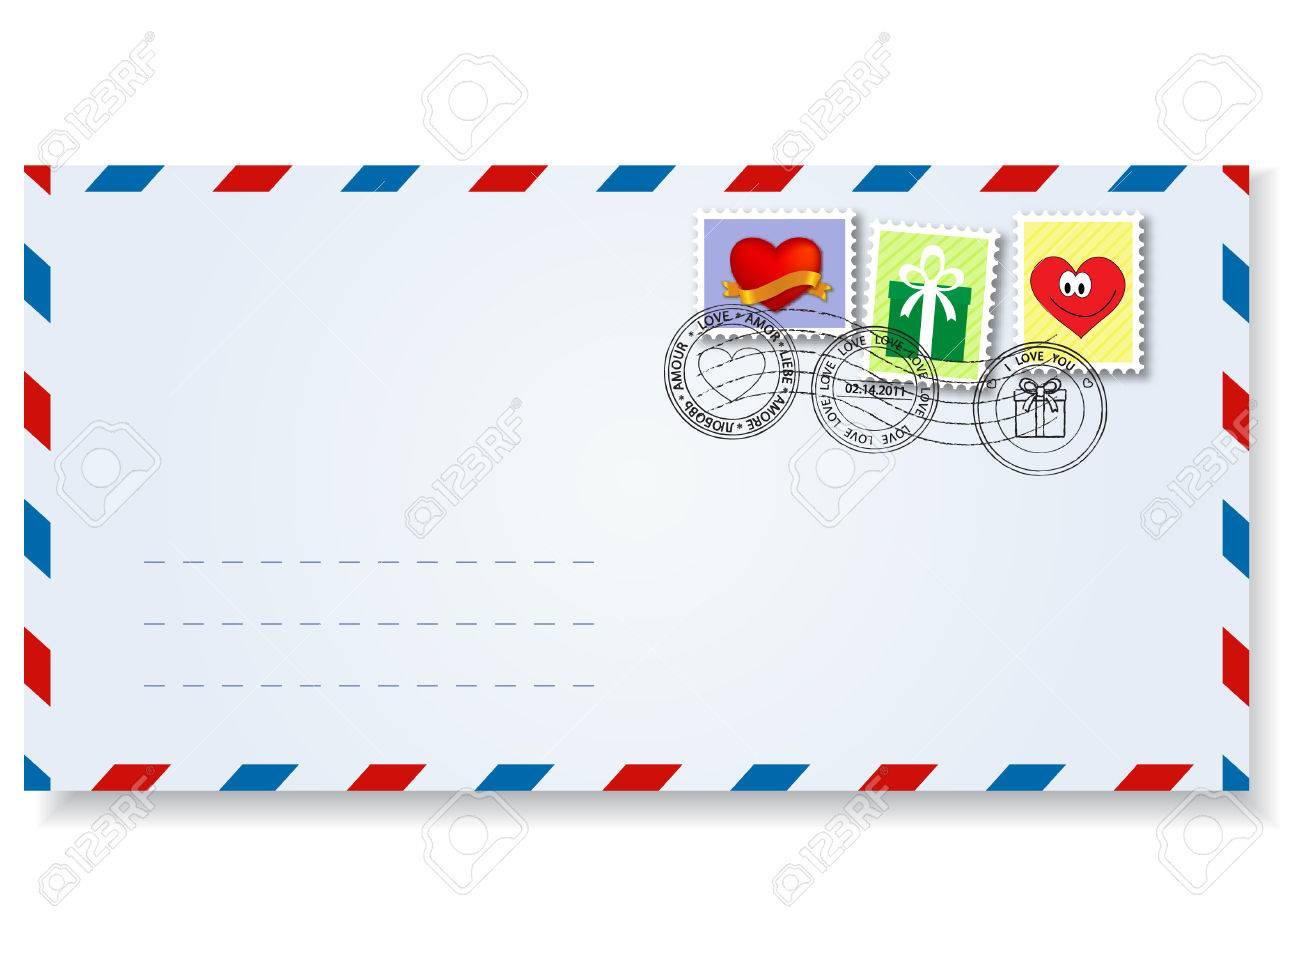 Letter To St.valentine's Day With Stamps And Postage Marks Royalty ...